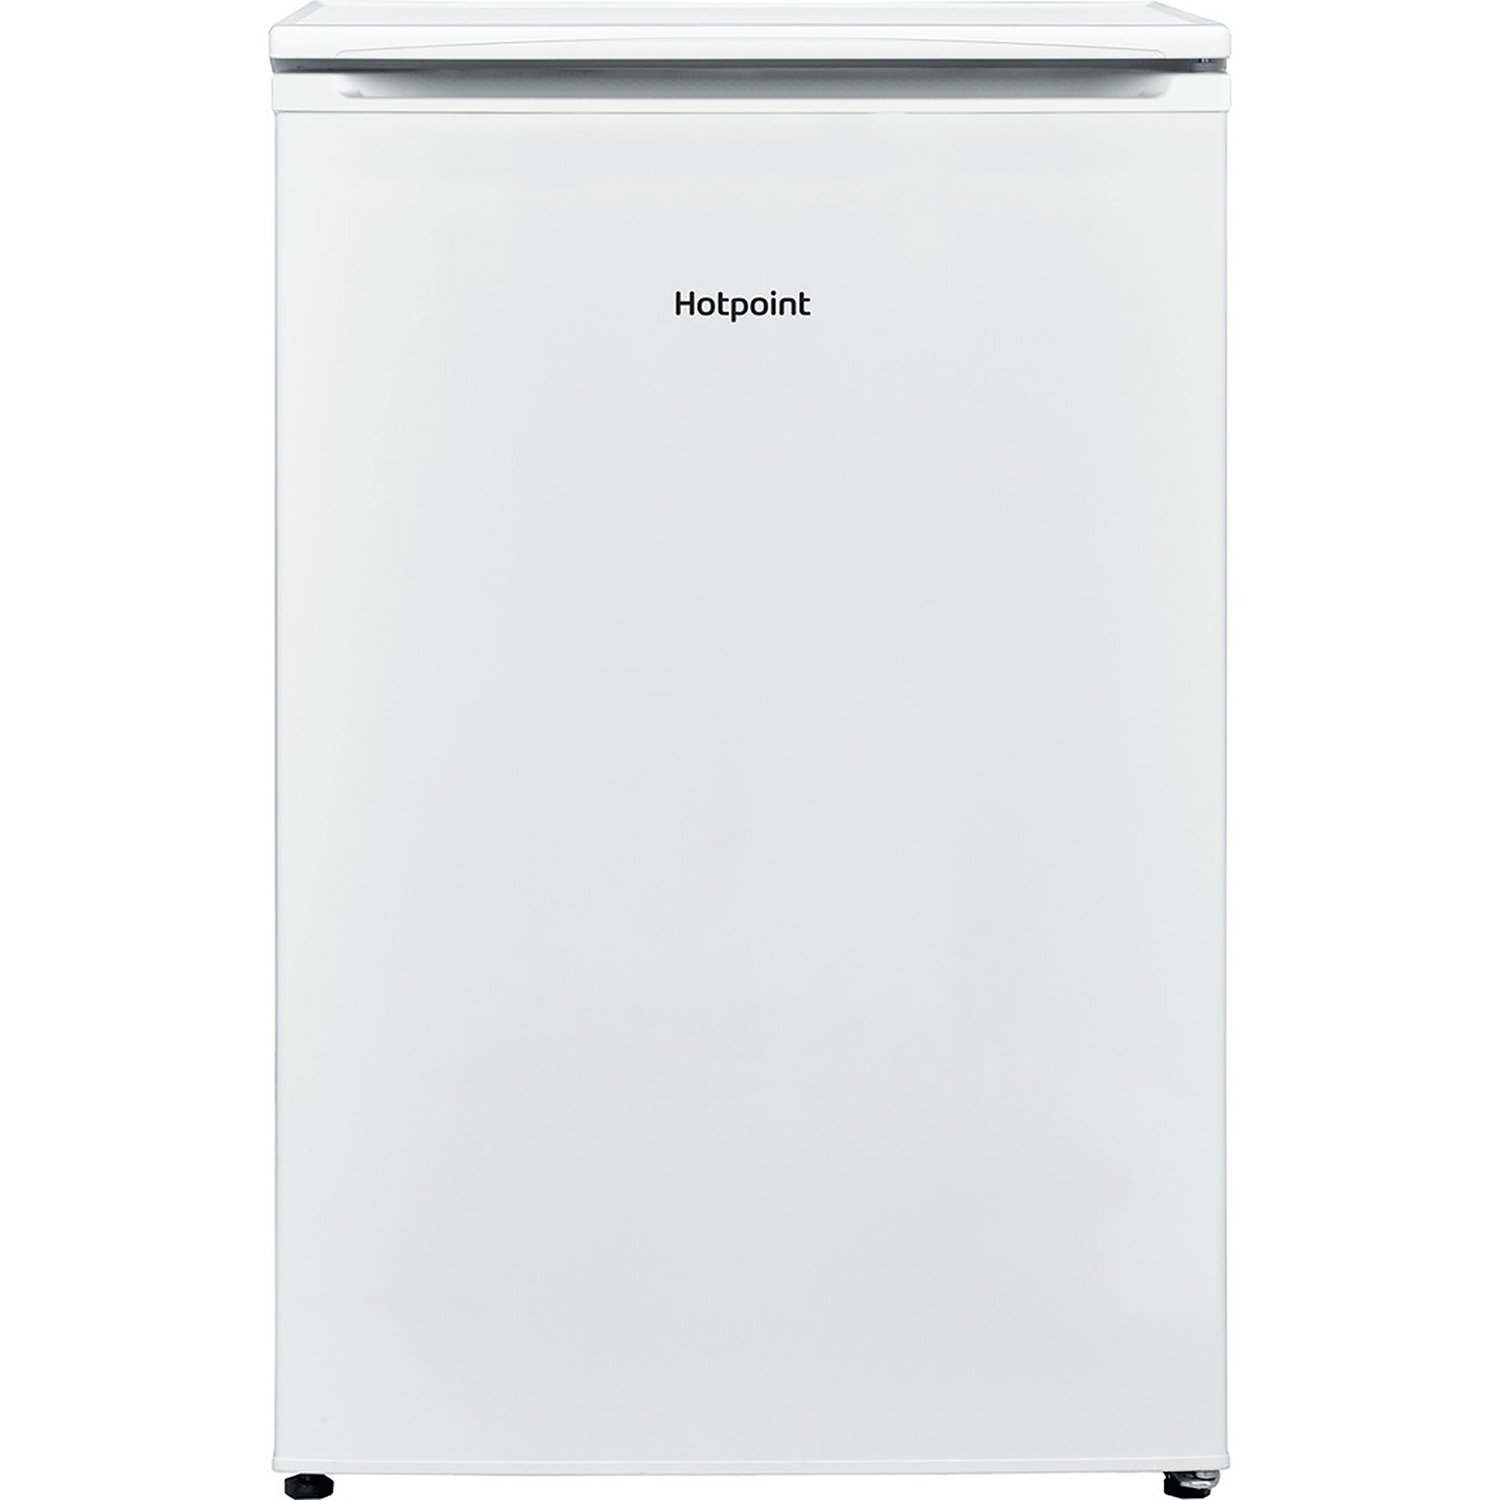 Hotpoint RZAAV22P Under Counter Freezer - White